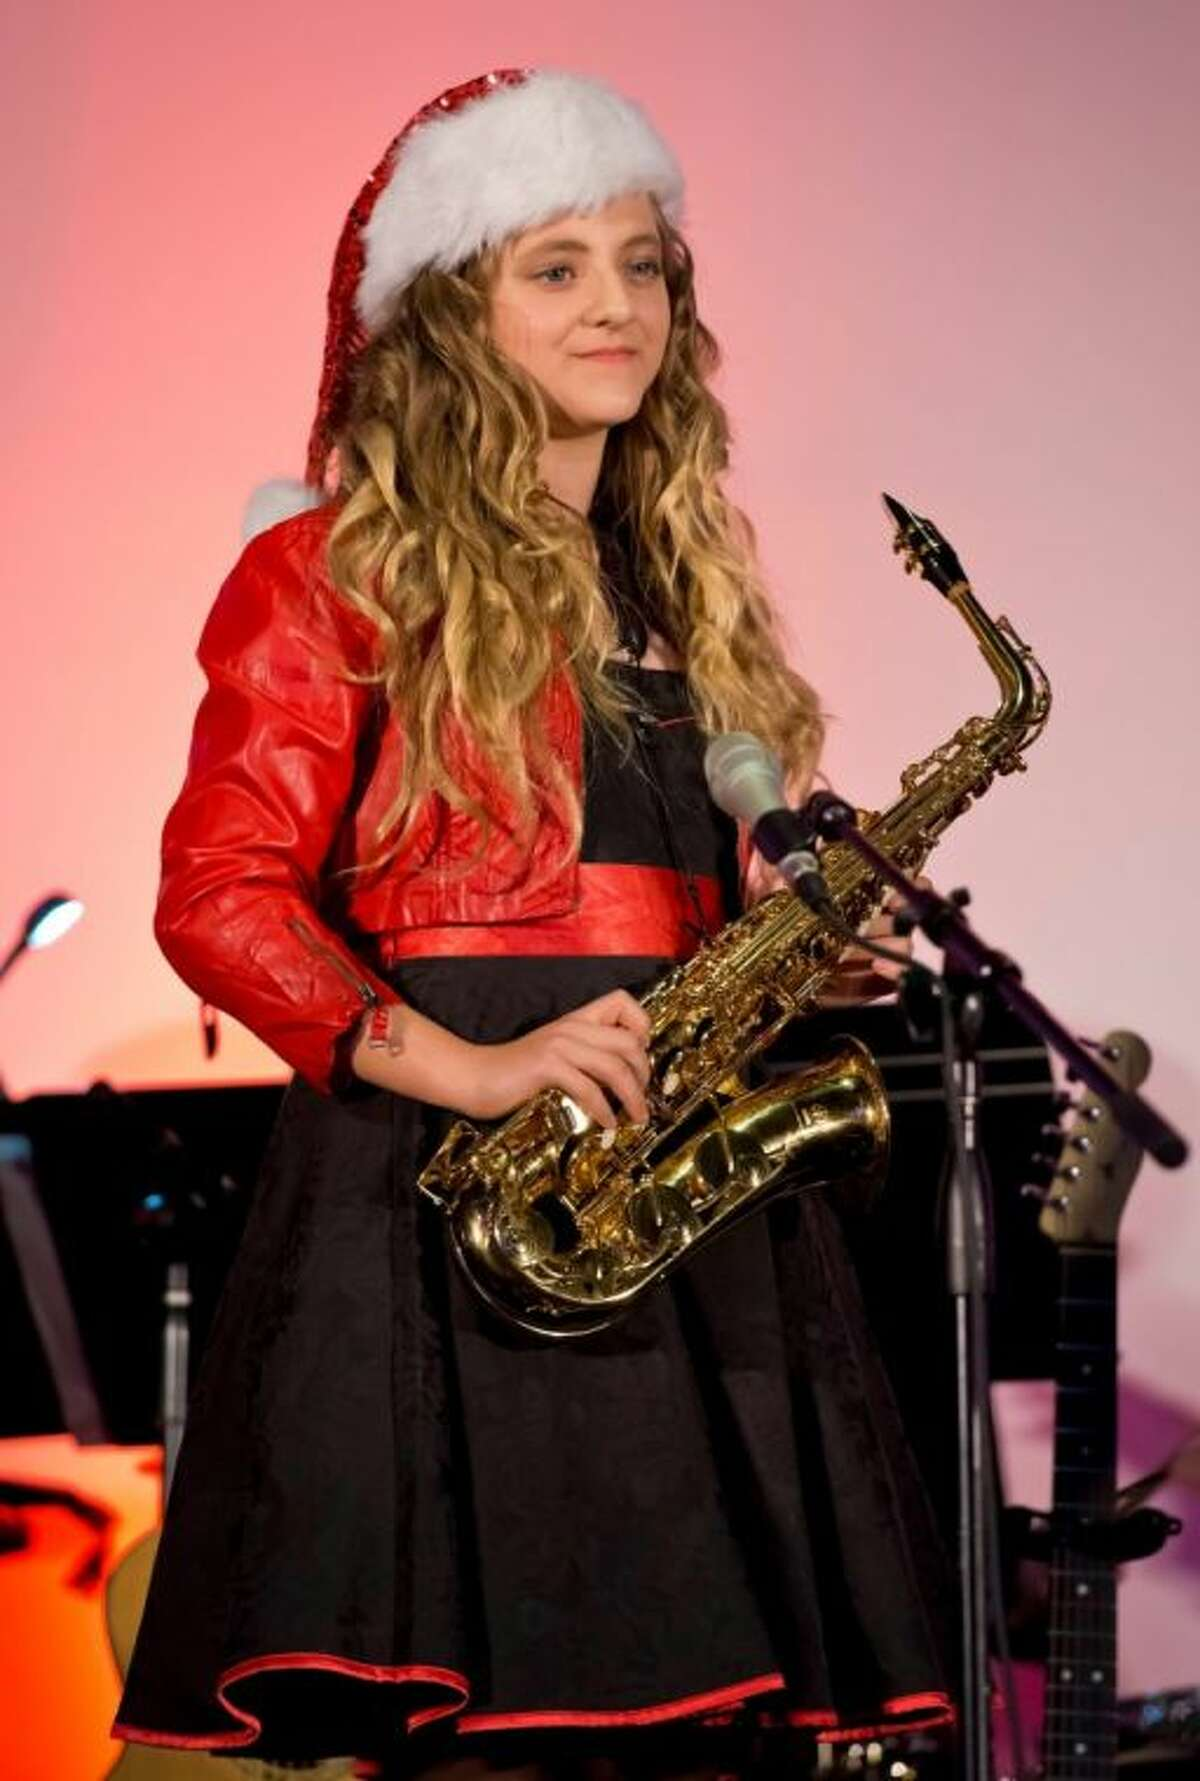 Katerina Sawyer was recently awarded the Music Doing Good Service Award and scholarship.